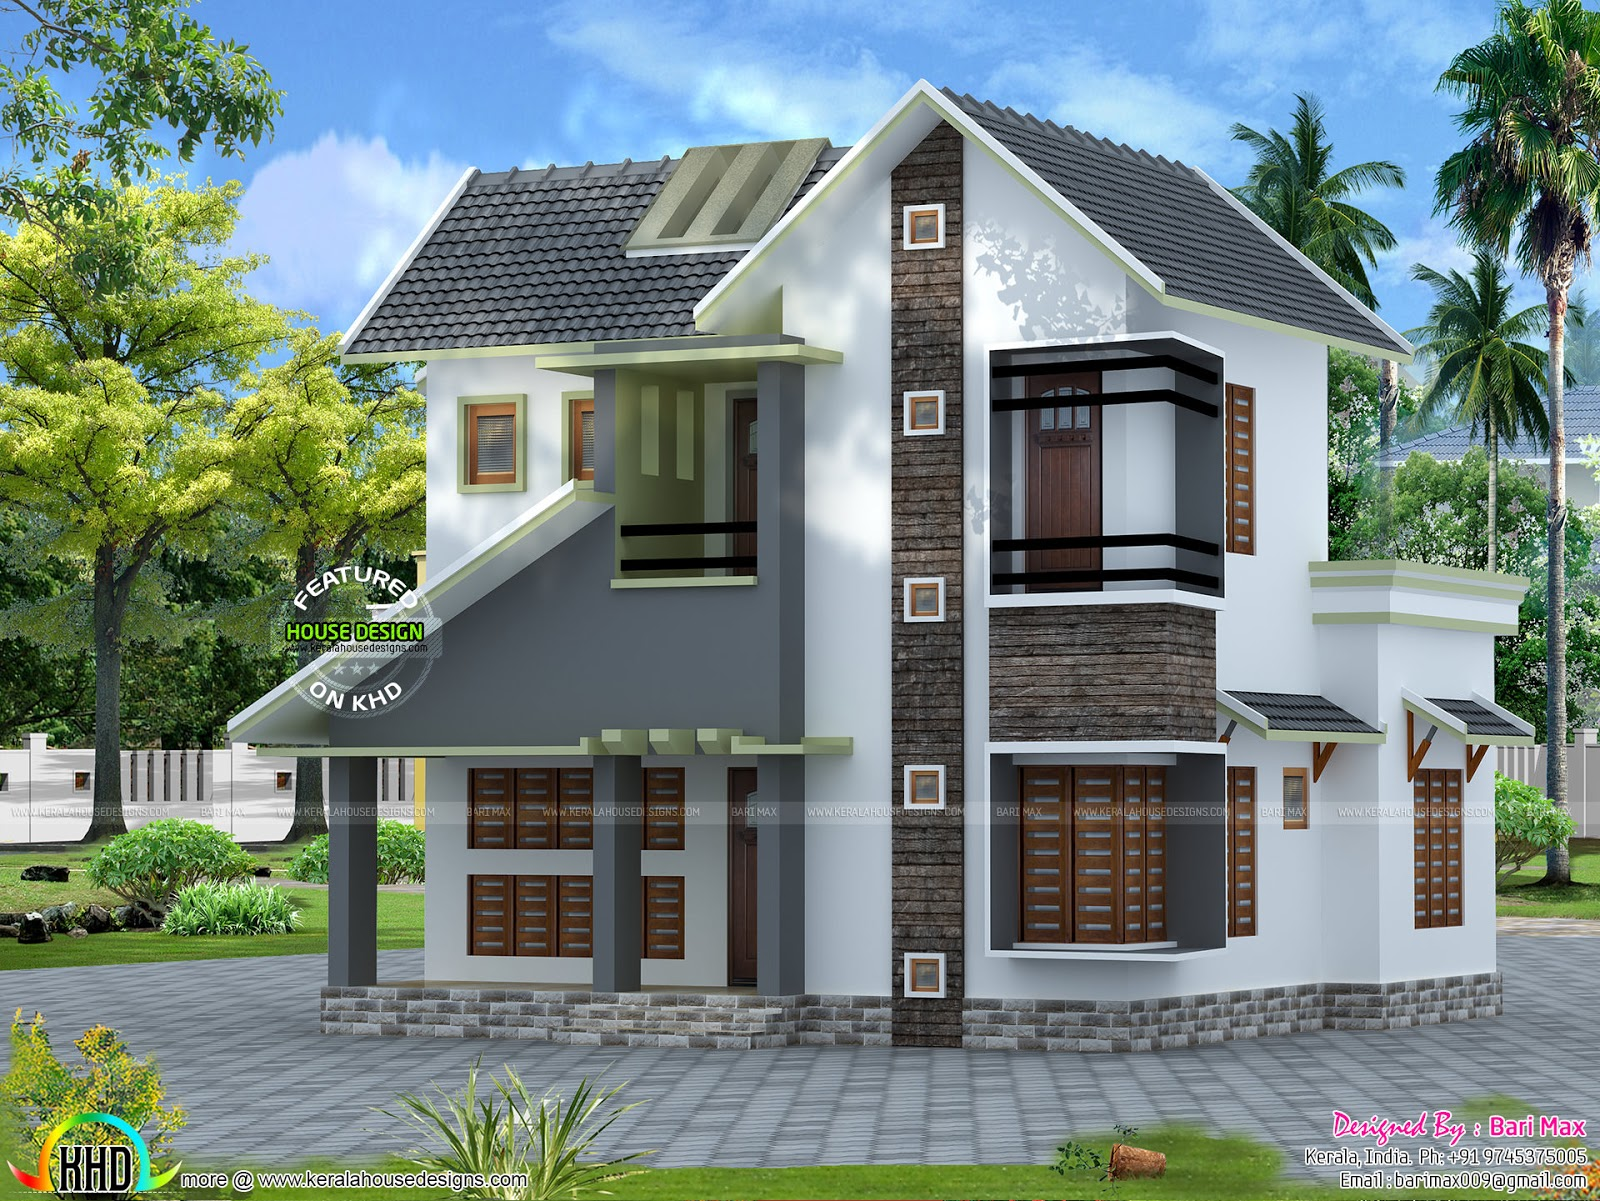 Slope roof low cost home design Kerala home design and floor plans